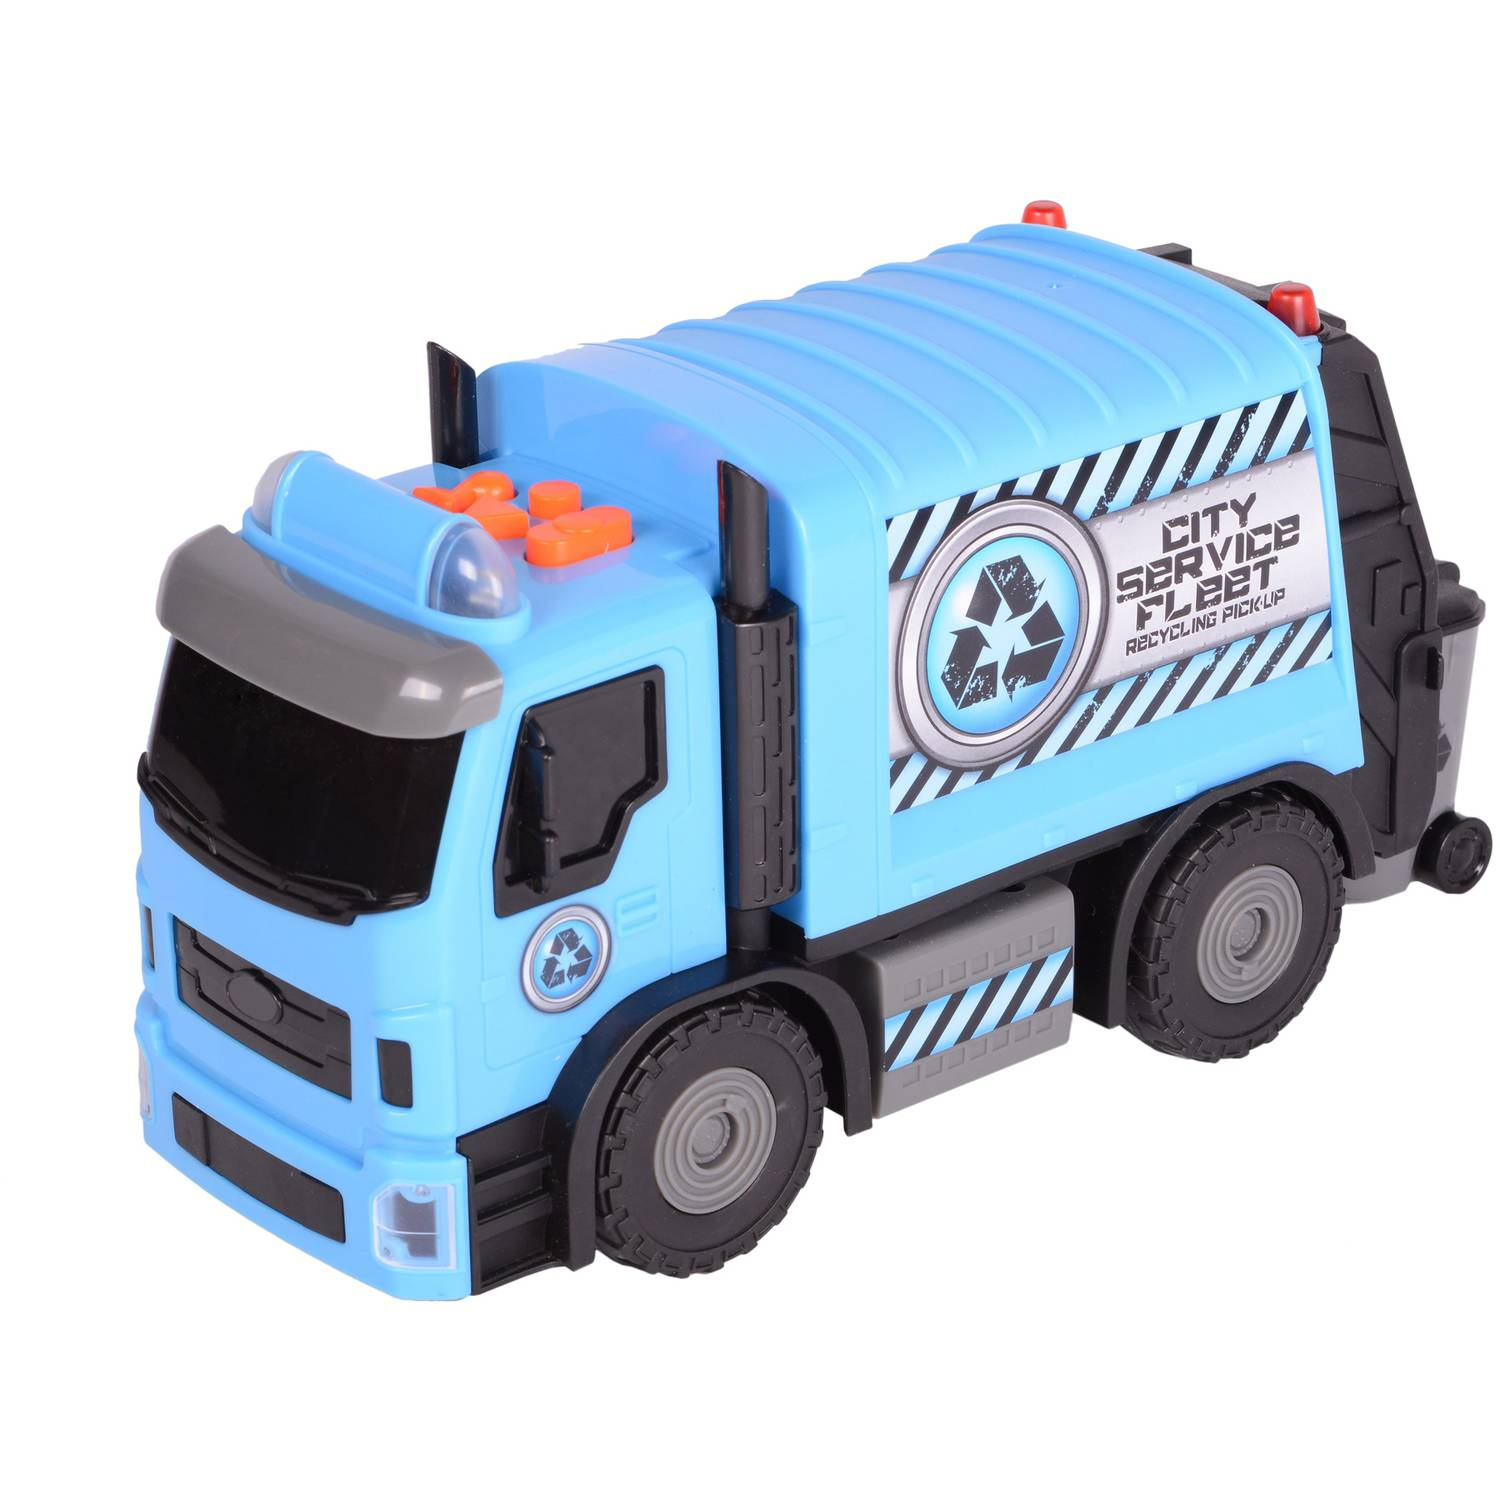 Adventure Force Municipal Vehicles, Recycle Truck by Toy State International Limited